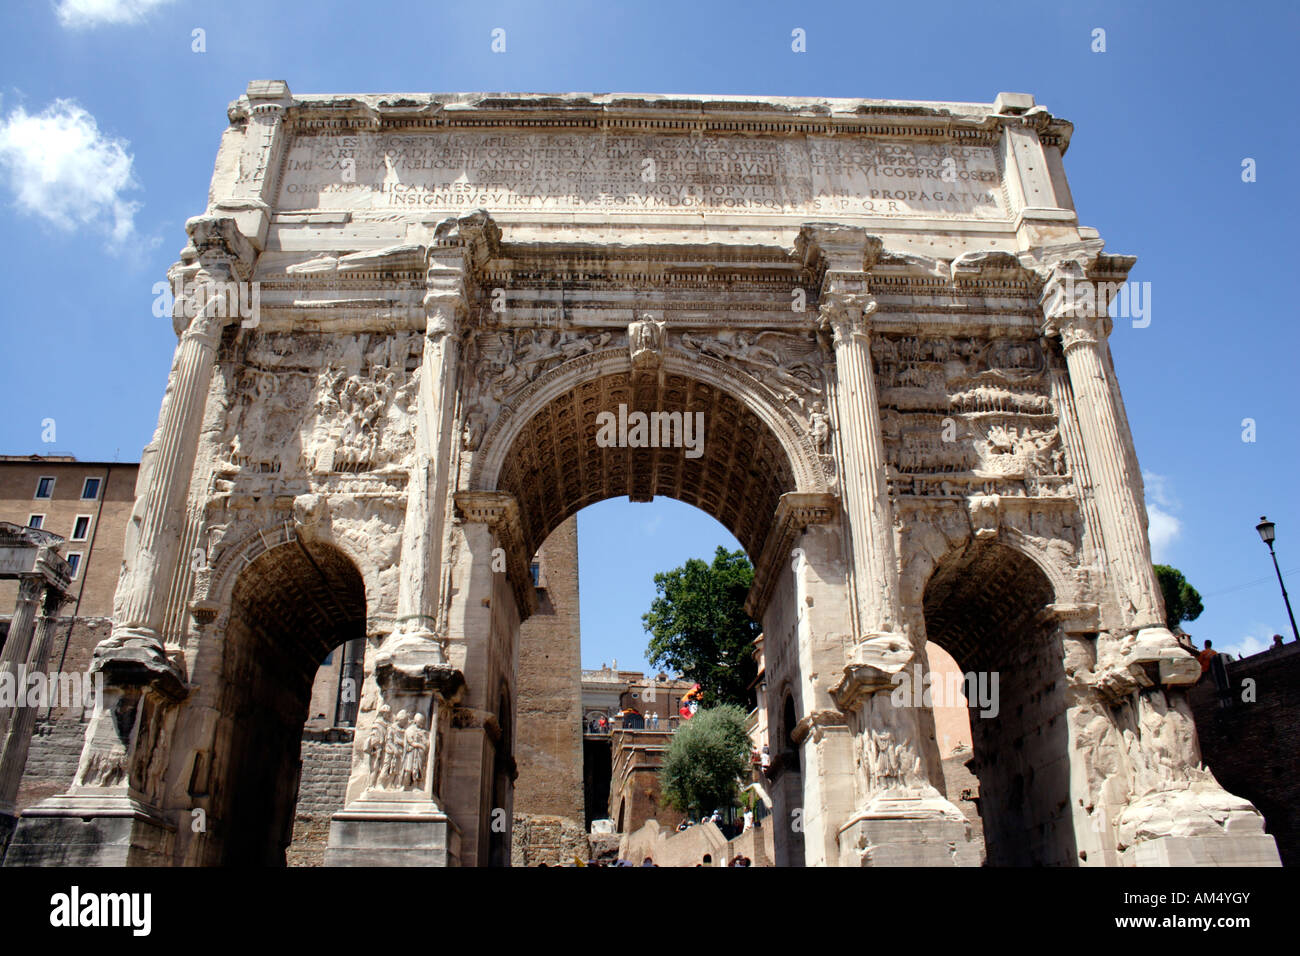 Triple arch of Septimus Severus at the Forum Rome - Stock Image